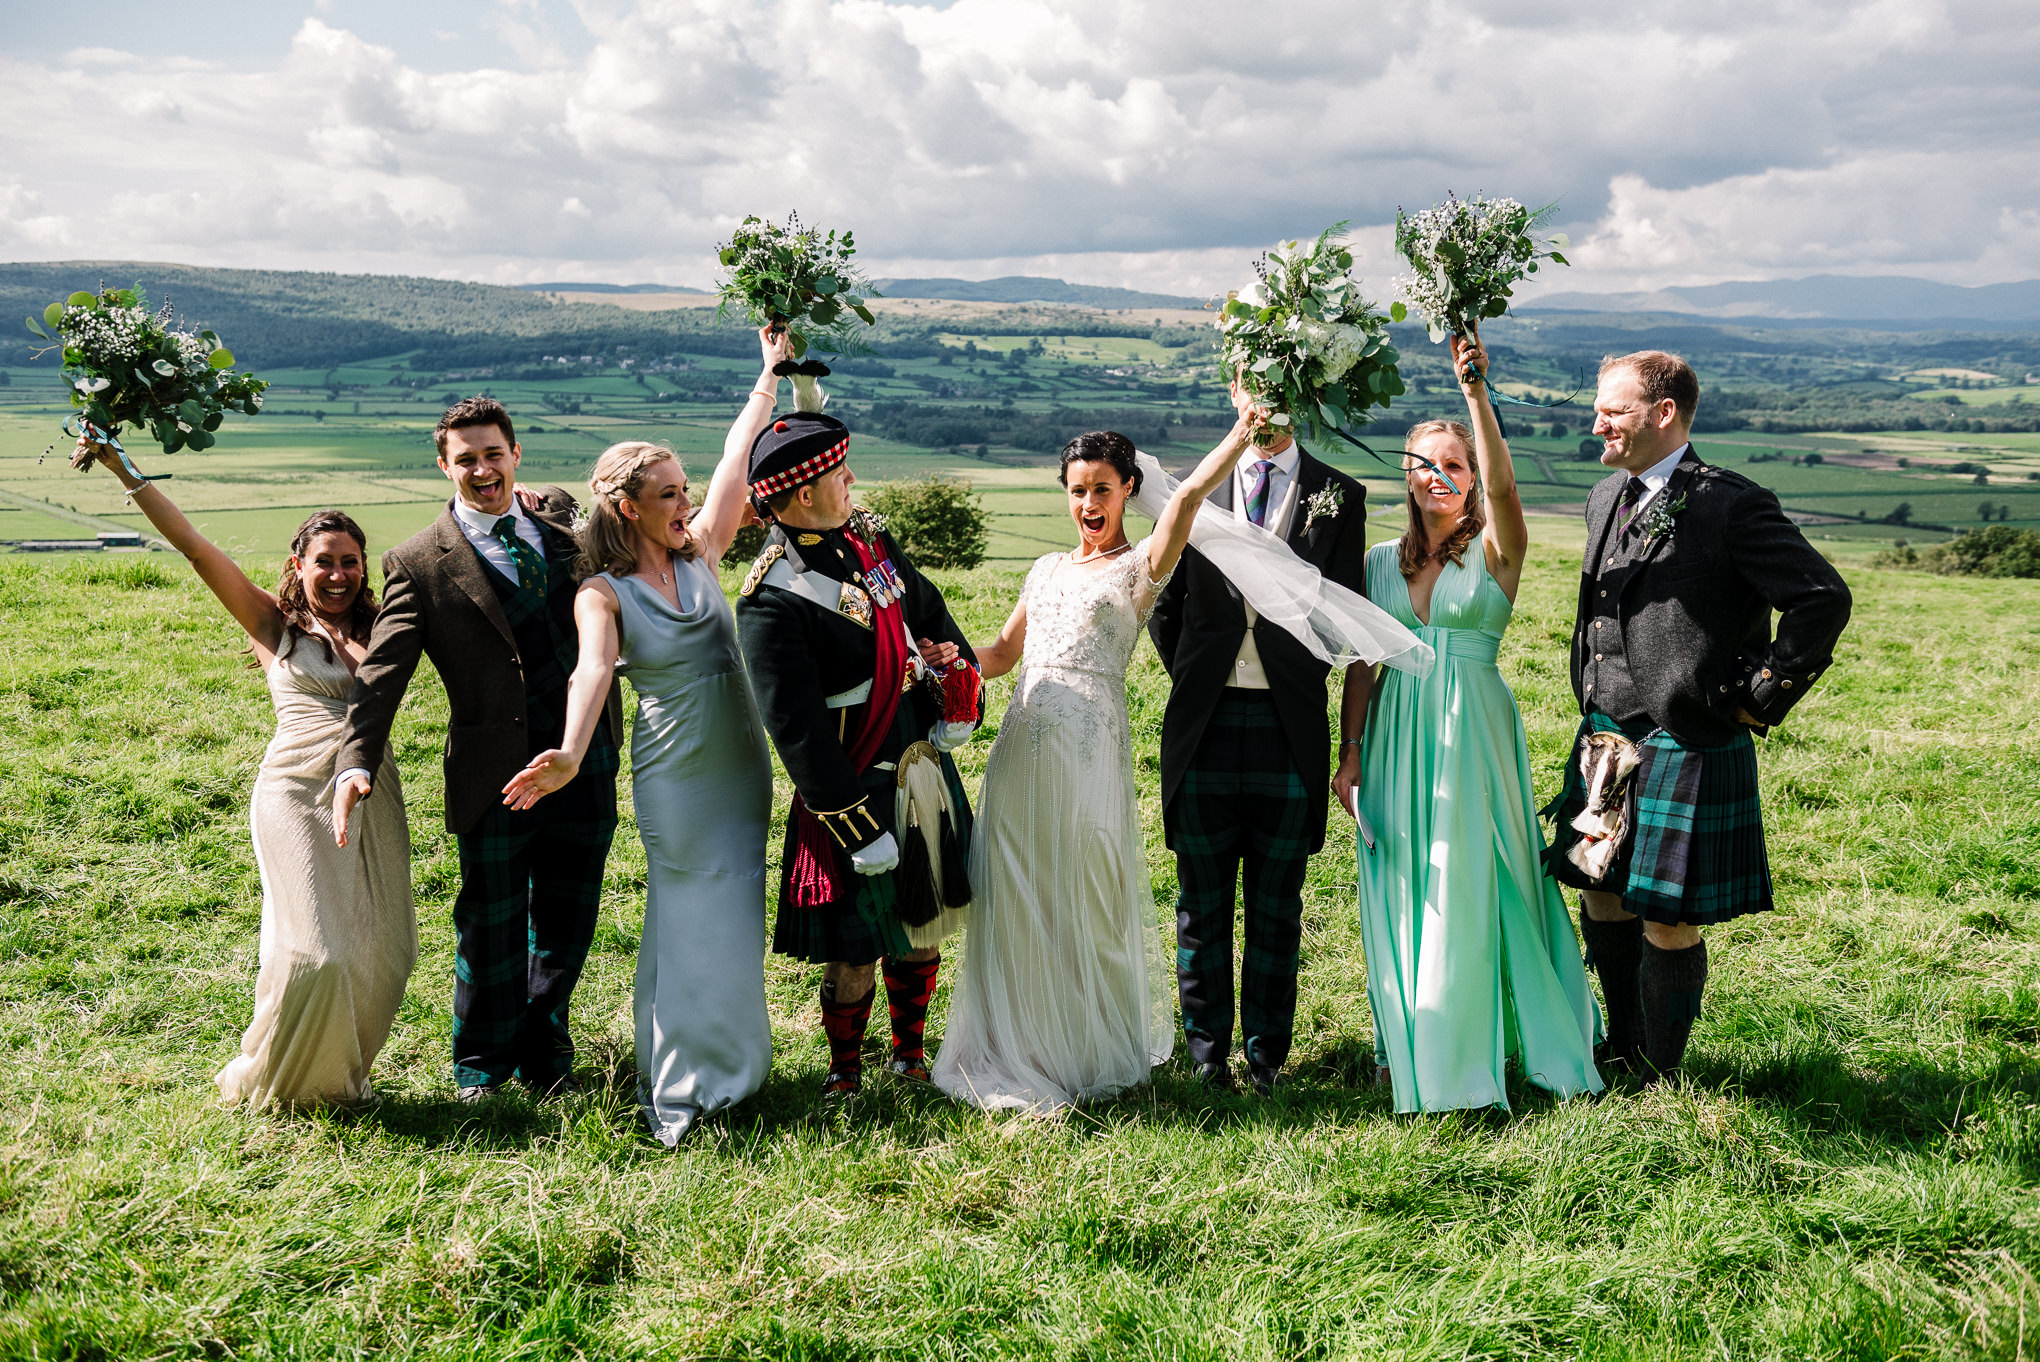 Bridal party with a view of the Lake district.